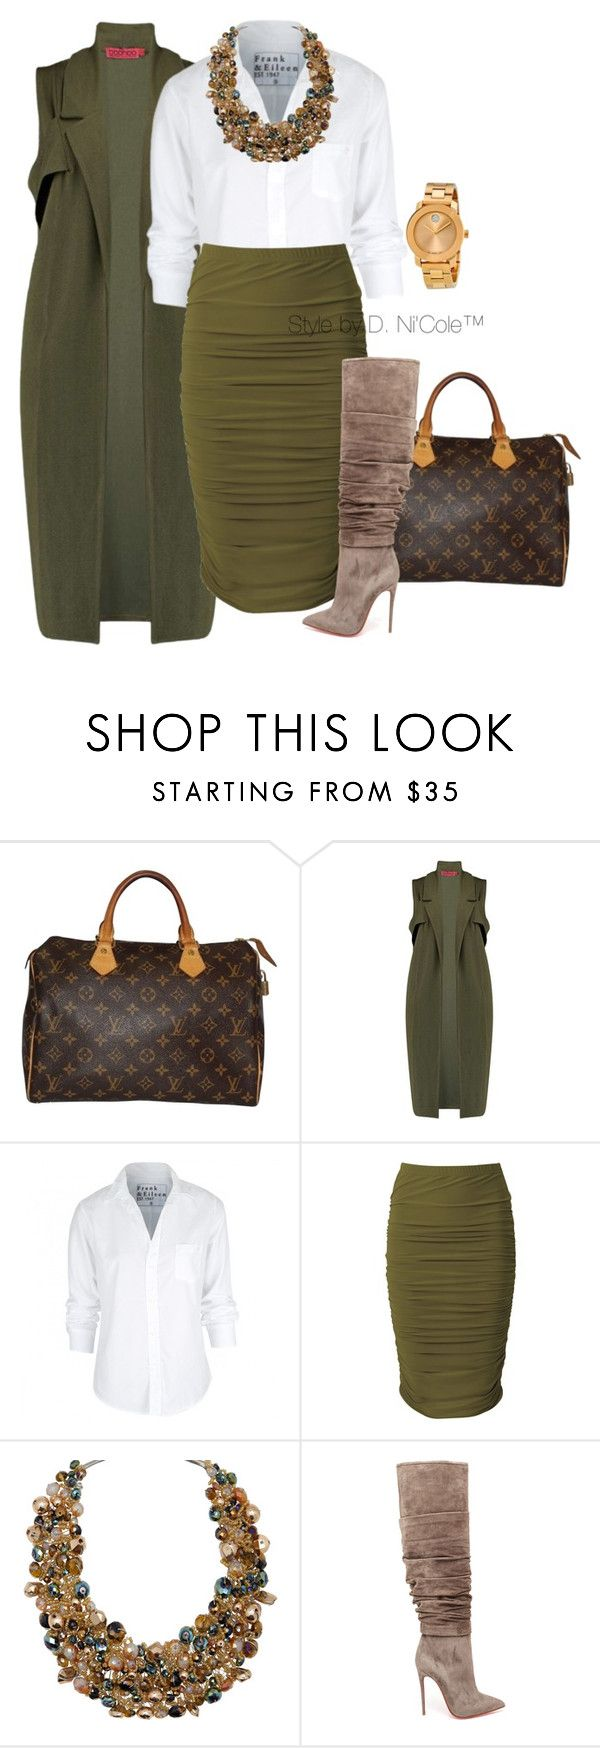 """Untitled #3230"" by stylebydnicole ❤ liked on Polyvore featuring Louis Vuitton, Boohoo, Frank & Eileen, ALDO, Christian Louboutin and Movado"